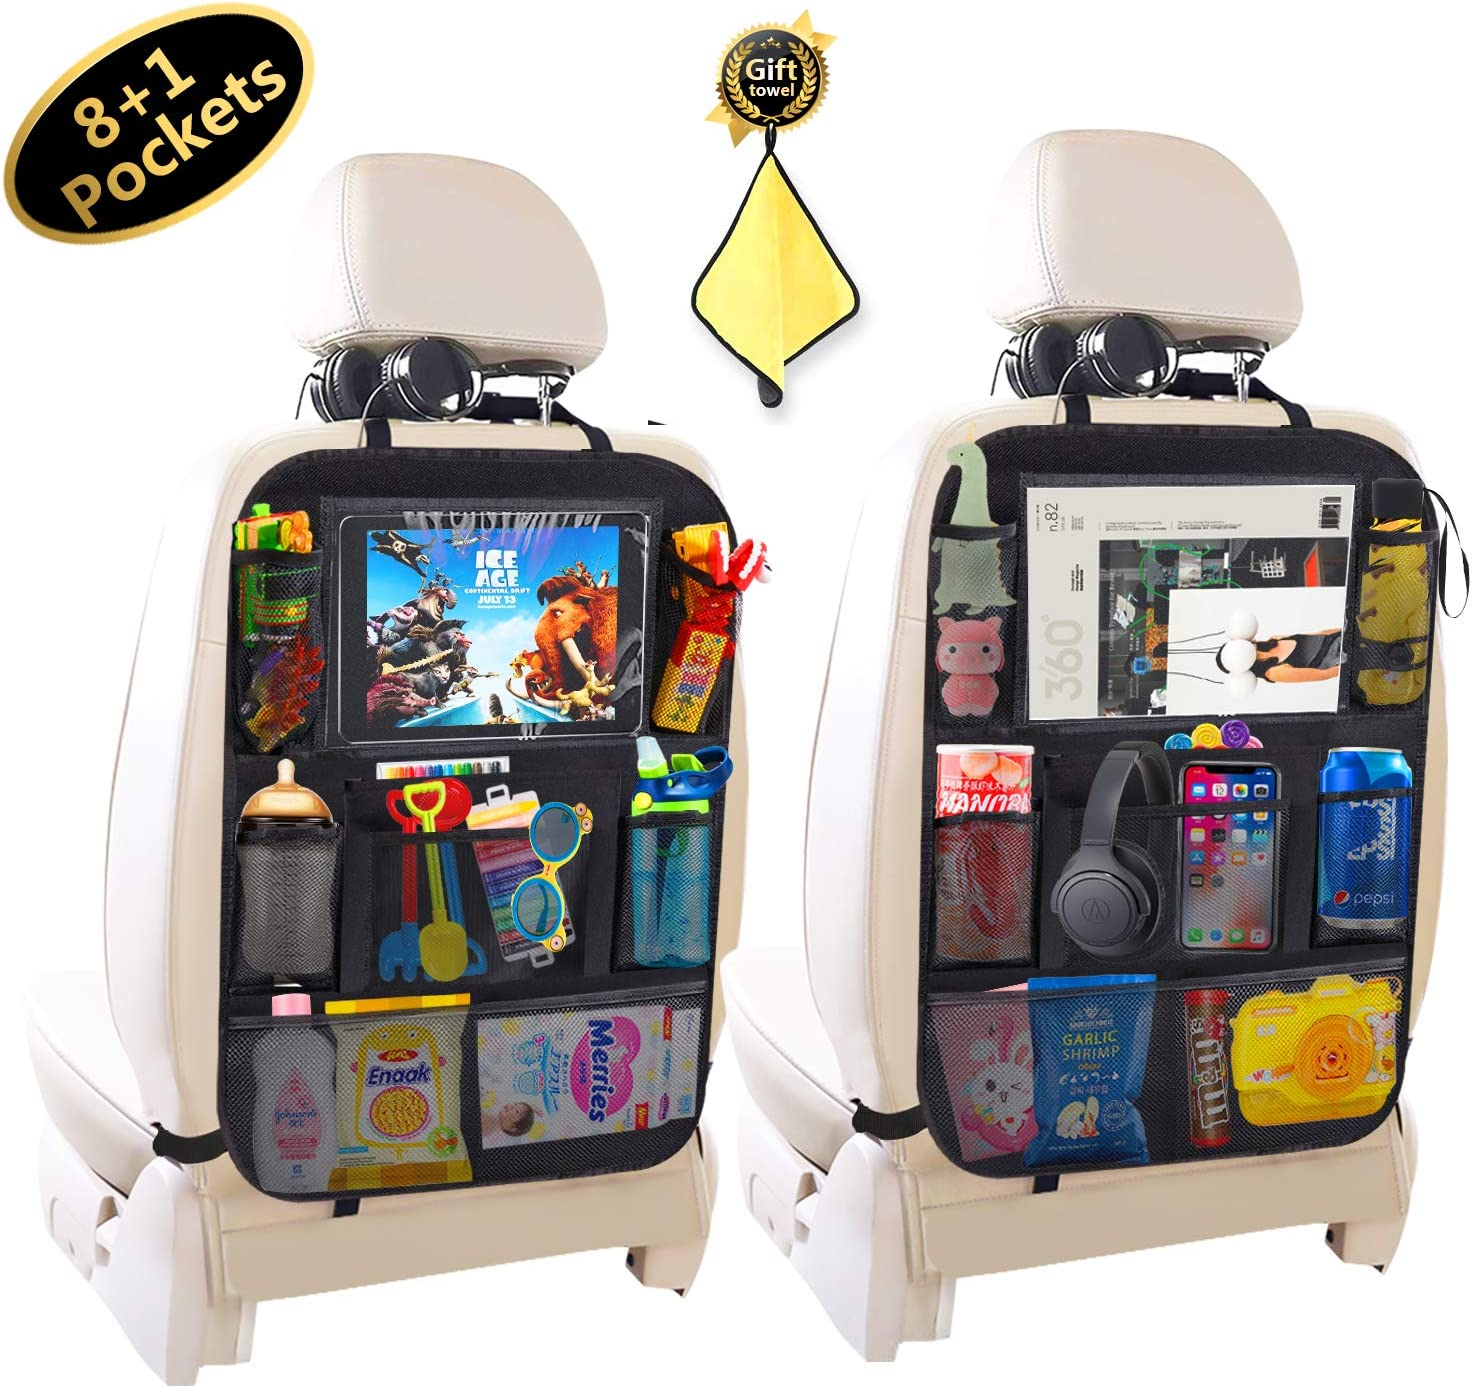 Car BackSeat Organizer,10Tablet Holder+9 Storage Pockets Kick Mat,Car Seat Back Protectors for Kids Drink Toy Diaper,Organizers for Van SUV,Car Accessories for Kids /&Toddlers 2 Pack 8+1 pockets